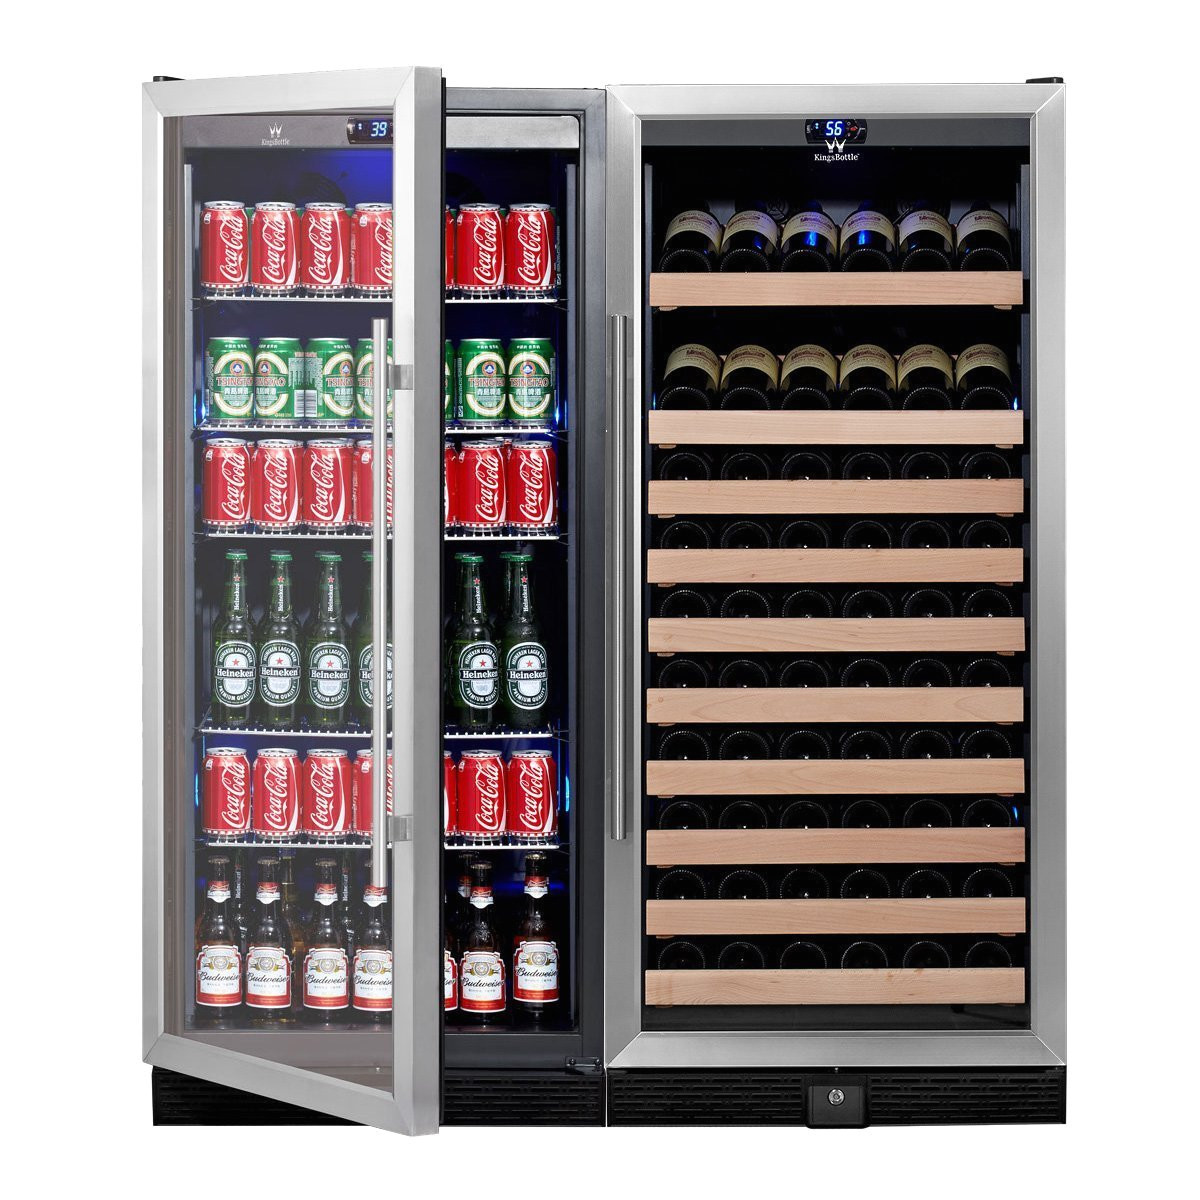 Shallow Depth Undercounter Beverage Fridge Amazon Com Kingsbottle 2 Zone Large Wine Beverage Fridge 397